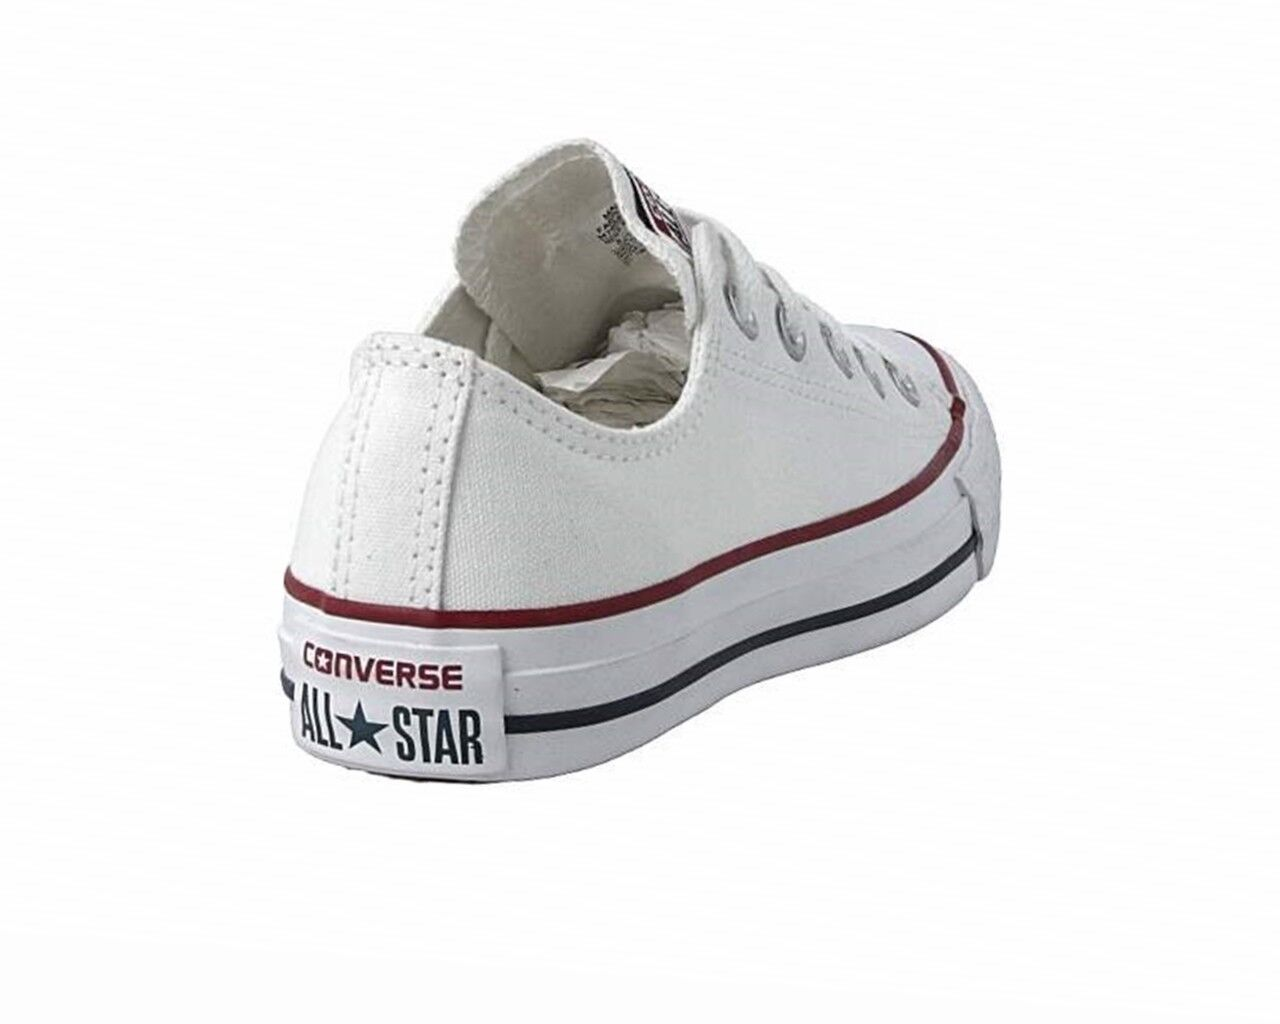 Uomo Trainers Converse All Star OX M7652C Canvas Damenschuhe Trainers Uomo Optical Weiß Schuhes 580436